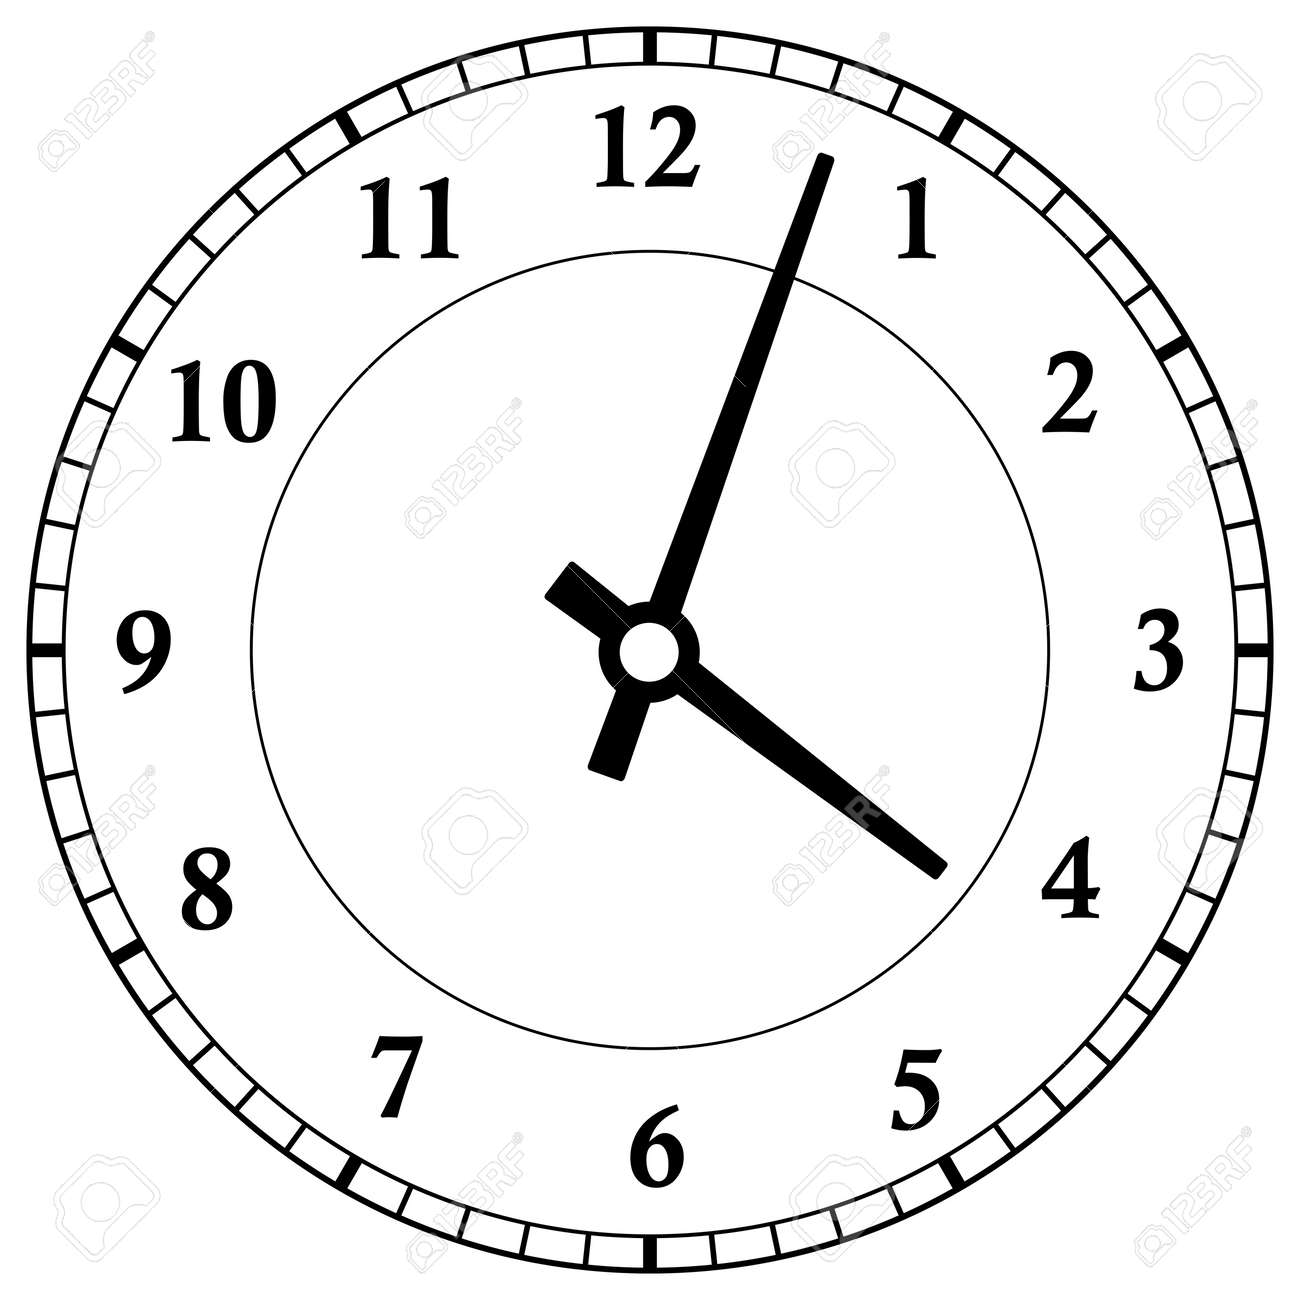 Clock dial face vector illustration on white background - 158530993